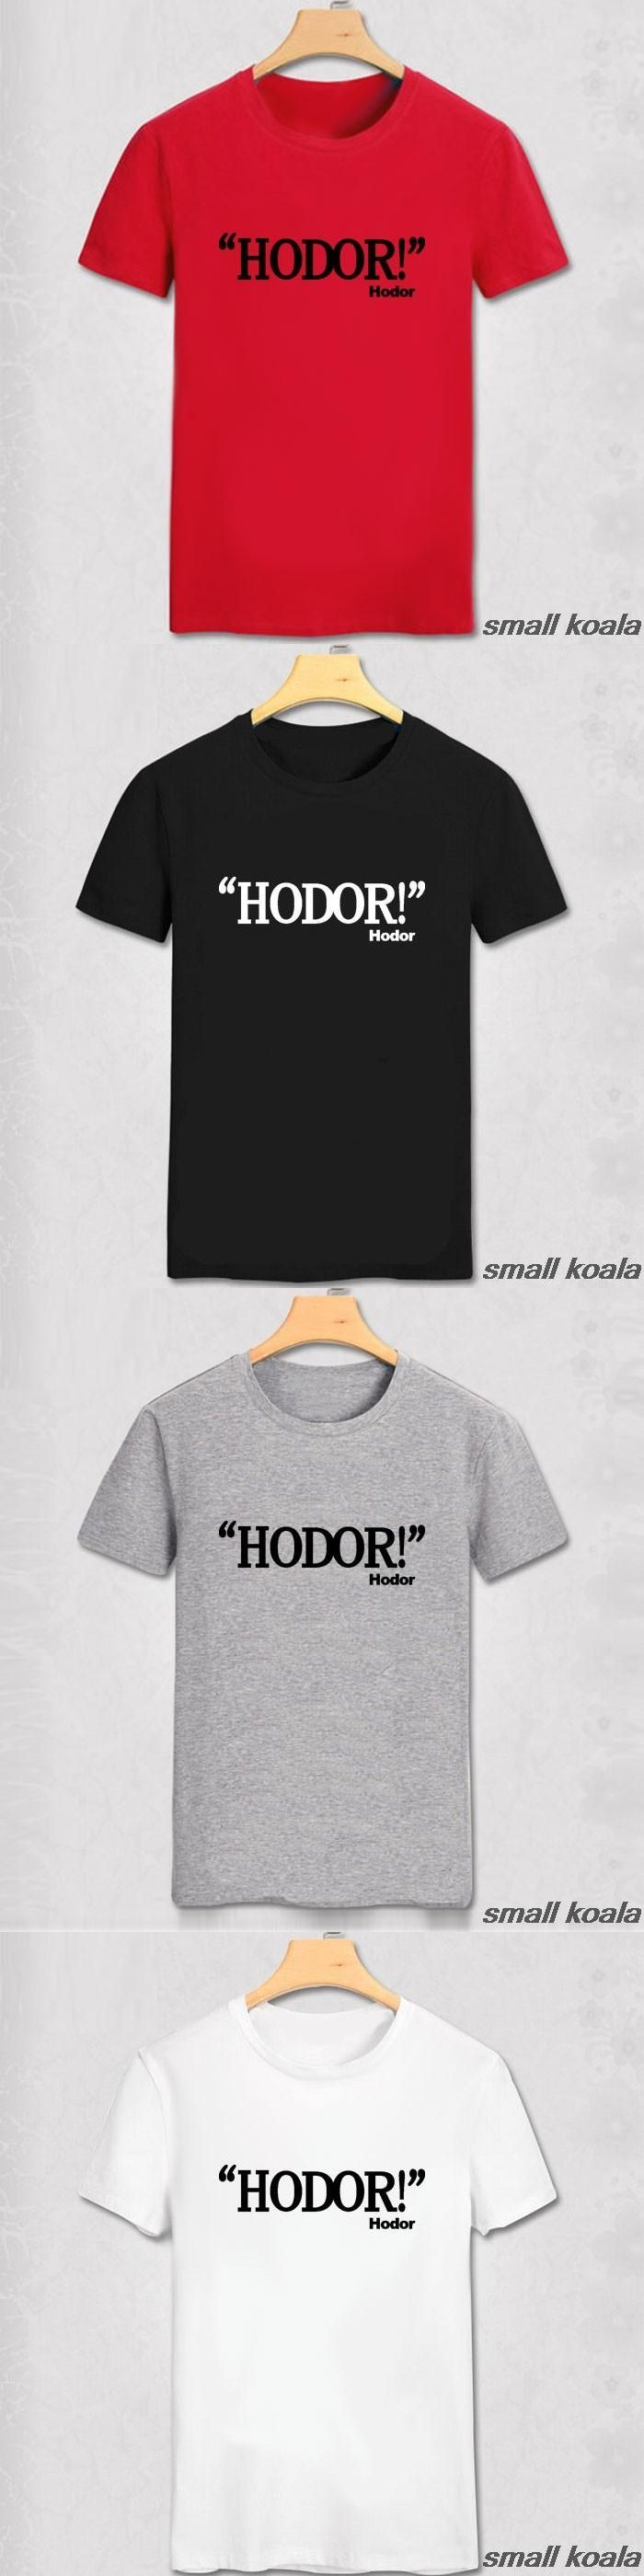 game of thrones shirt Printed Men hodor T Shirt Camisetas Manga Curta Camisa Masculina t-shirt